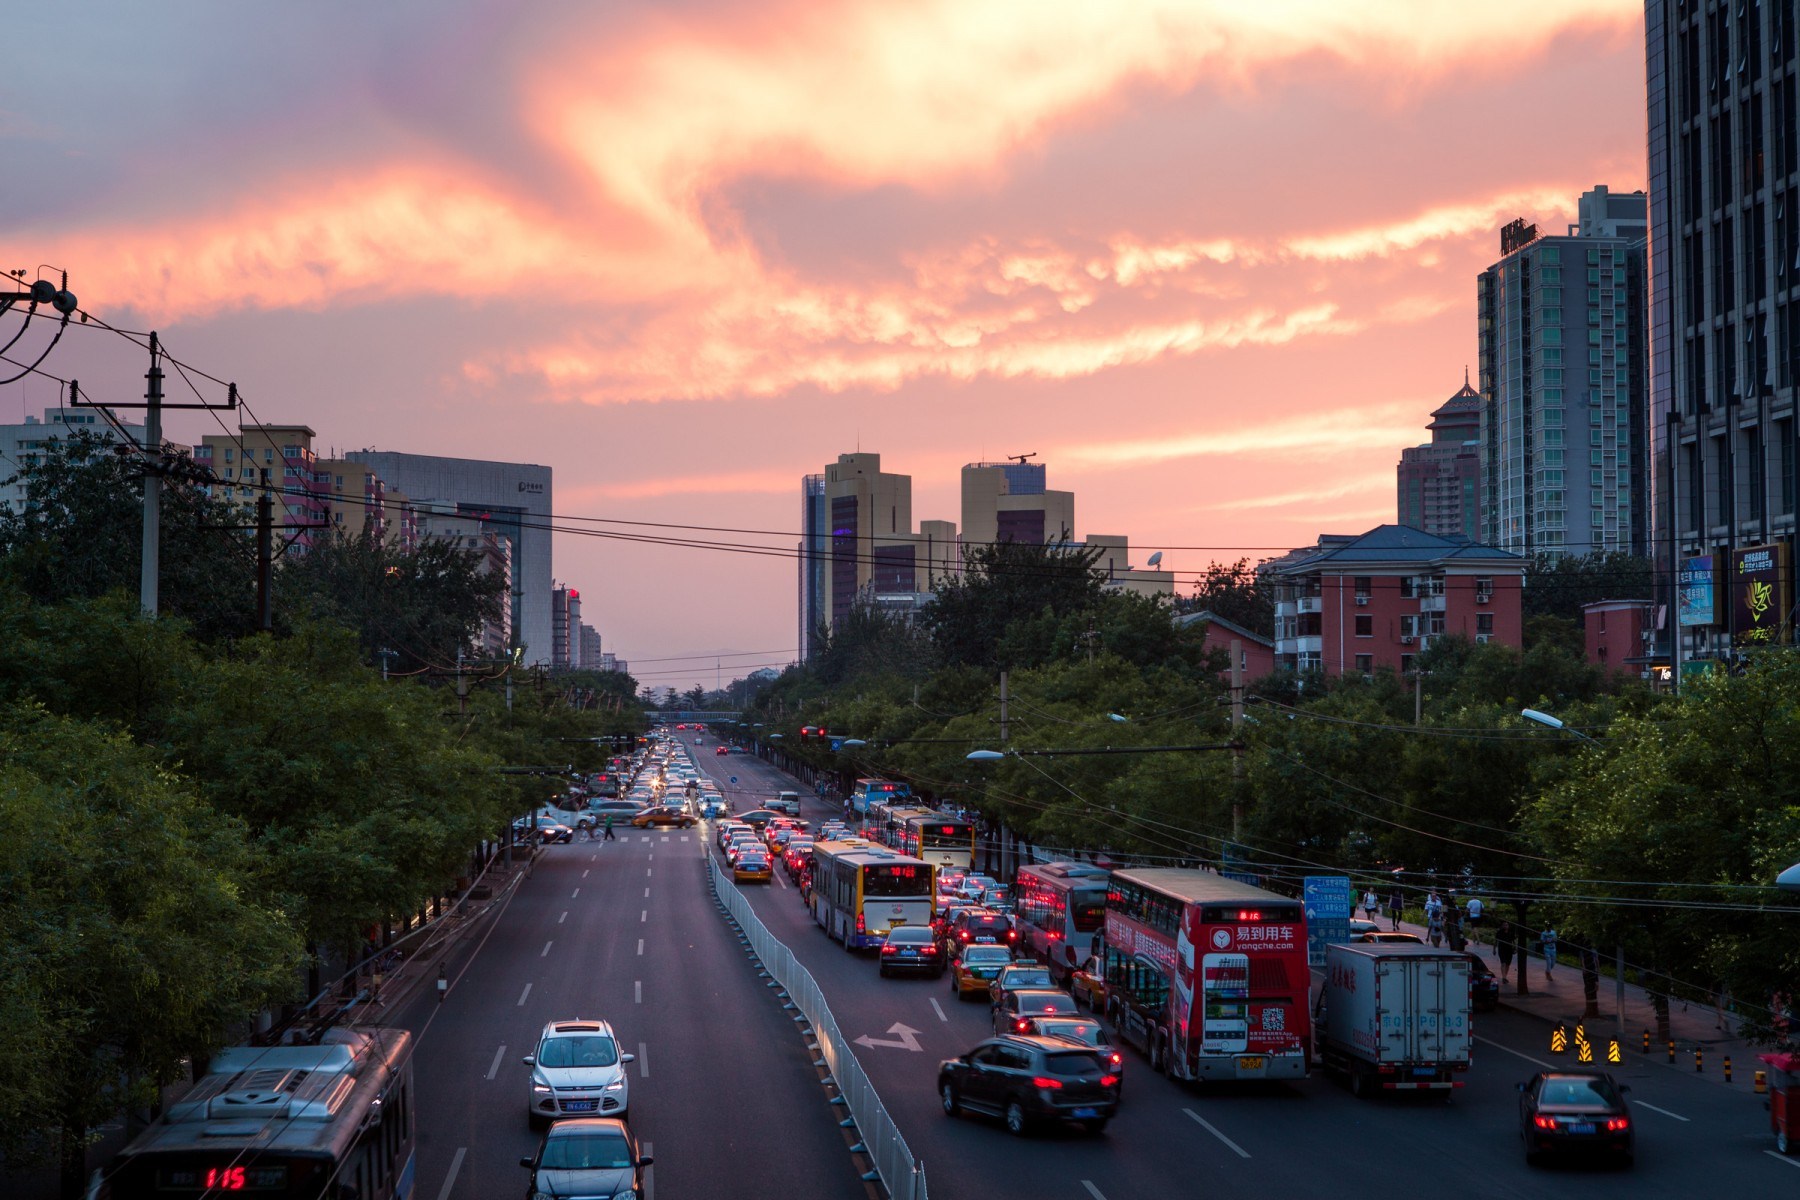 Sunset over the streets of Beijing.